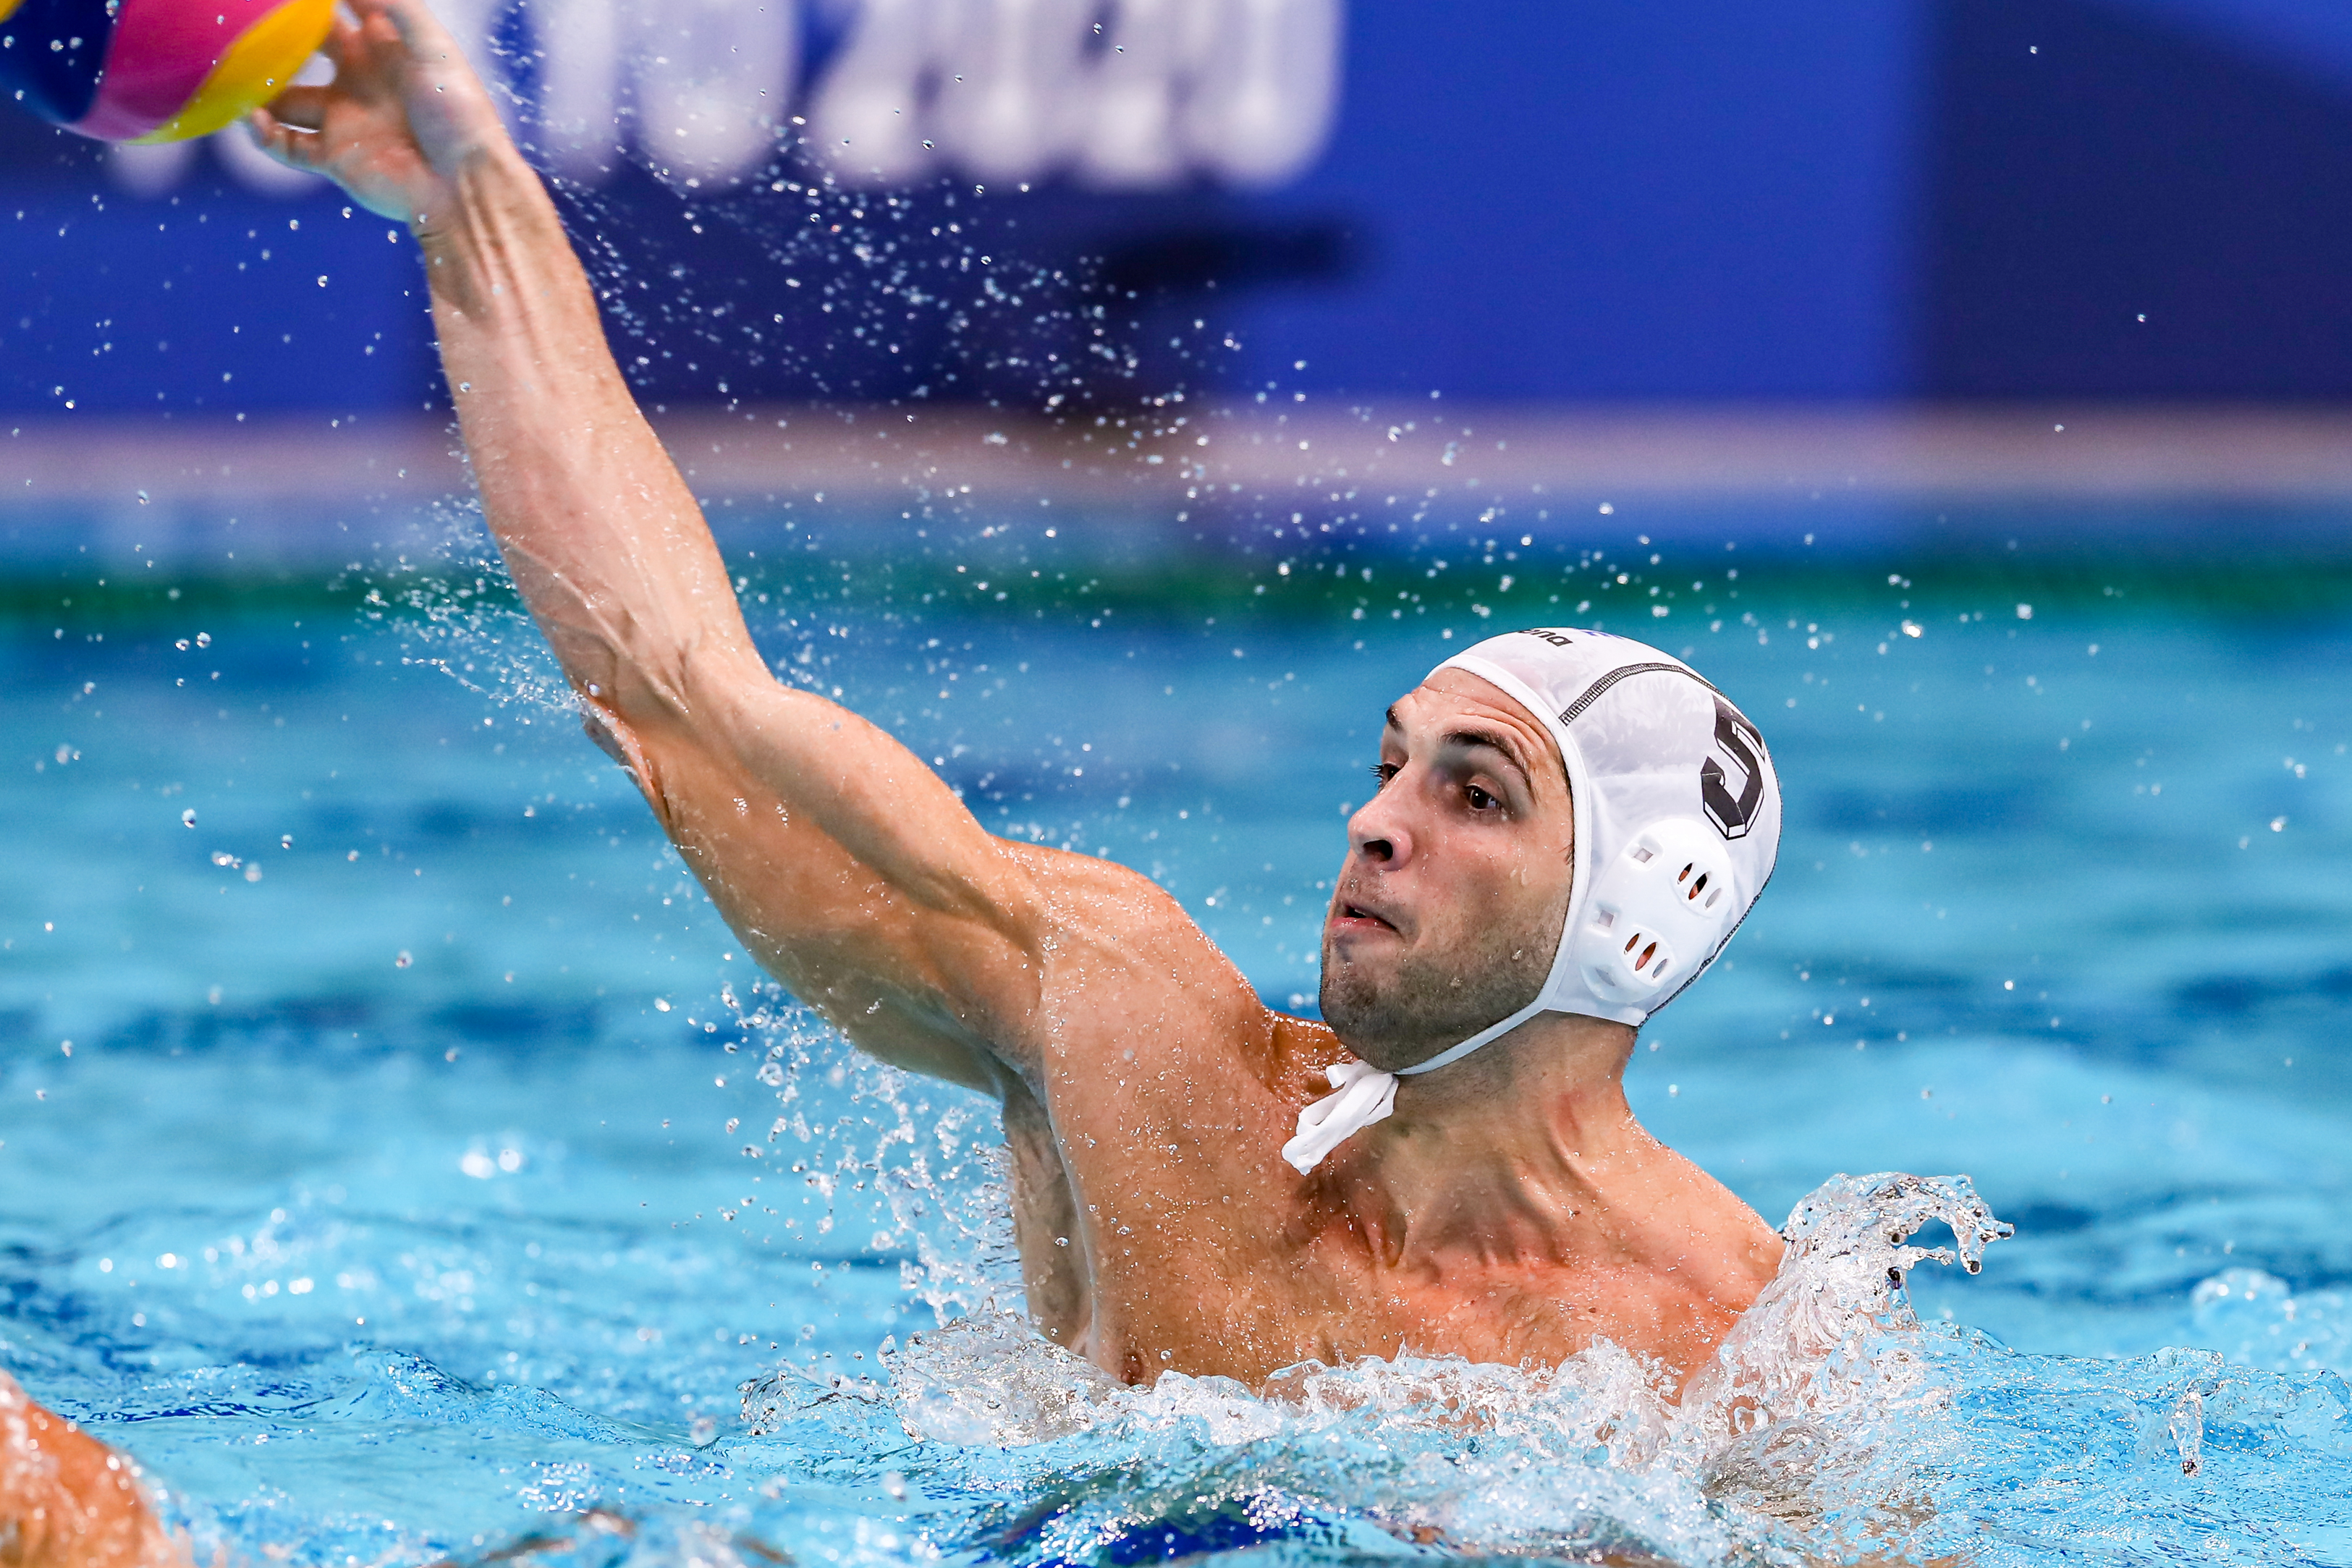 Ioannis Fountoulis of Greece during the Tokyo 2020 Olympic Waterpolo Tournament men's Semi Final match between Greece and Hungary at Tatsumi Waterpolo Centre on August 6, 2021 in Tokyo, Japan